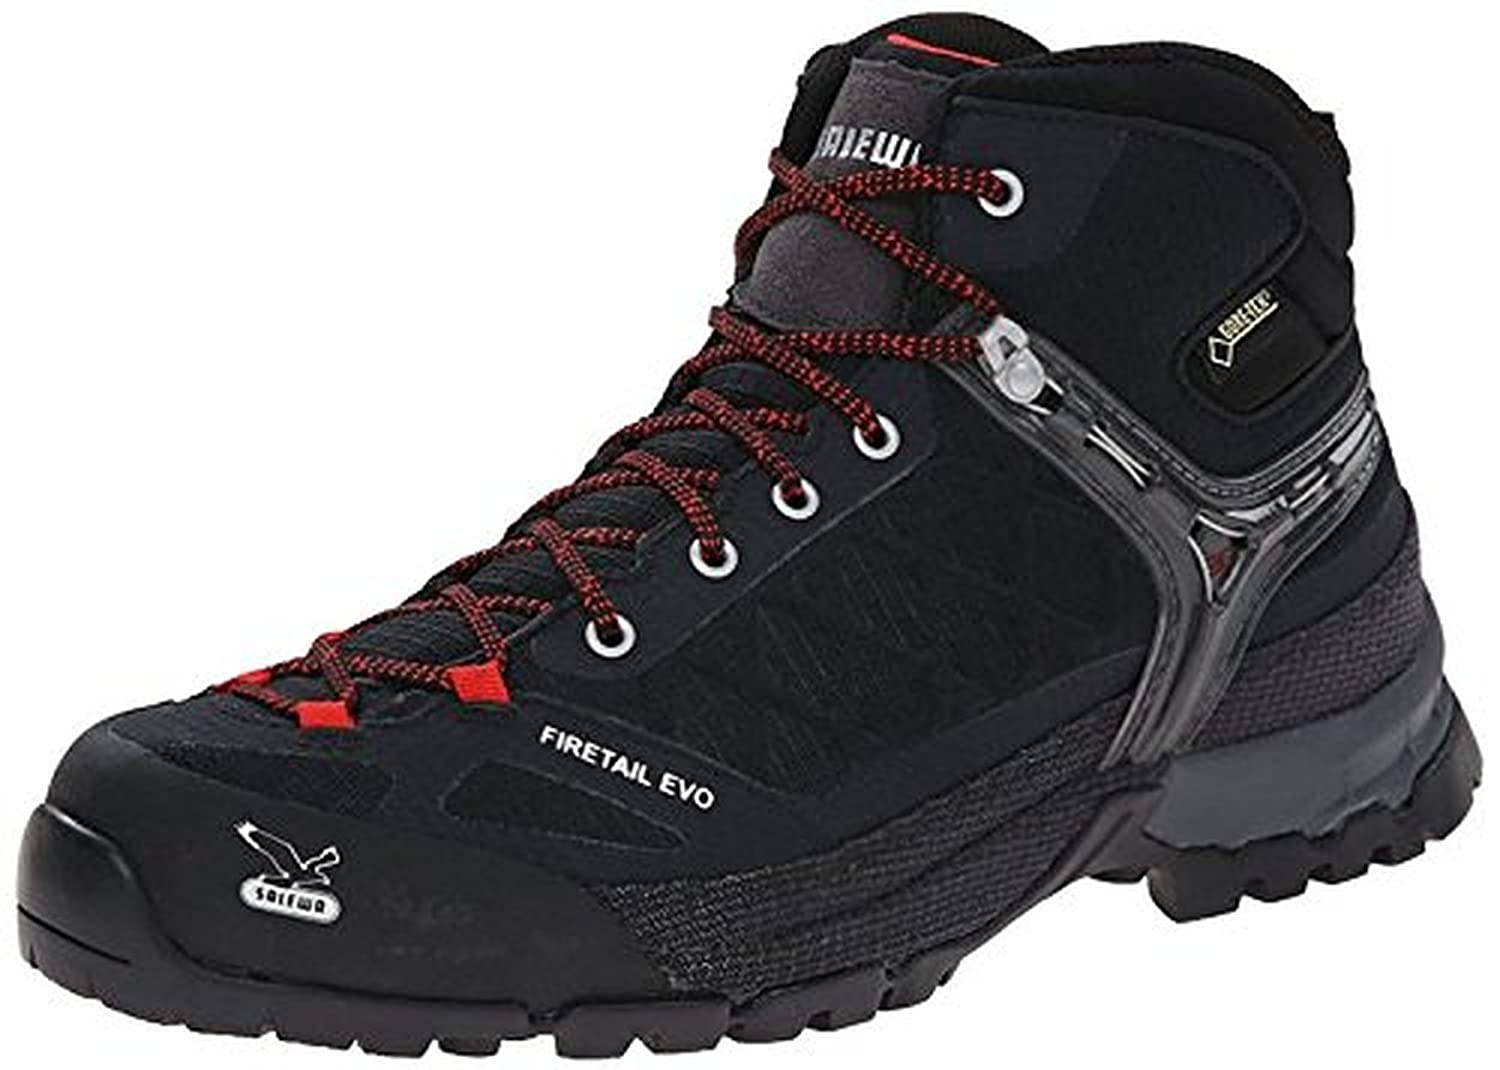 Salewa Men's Firetail Evo Mid GTX Boots Black 9 & Etip Lite Gripper Glove Bundle